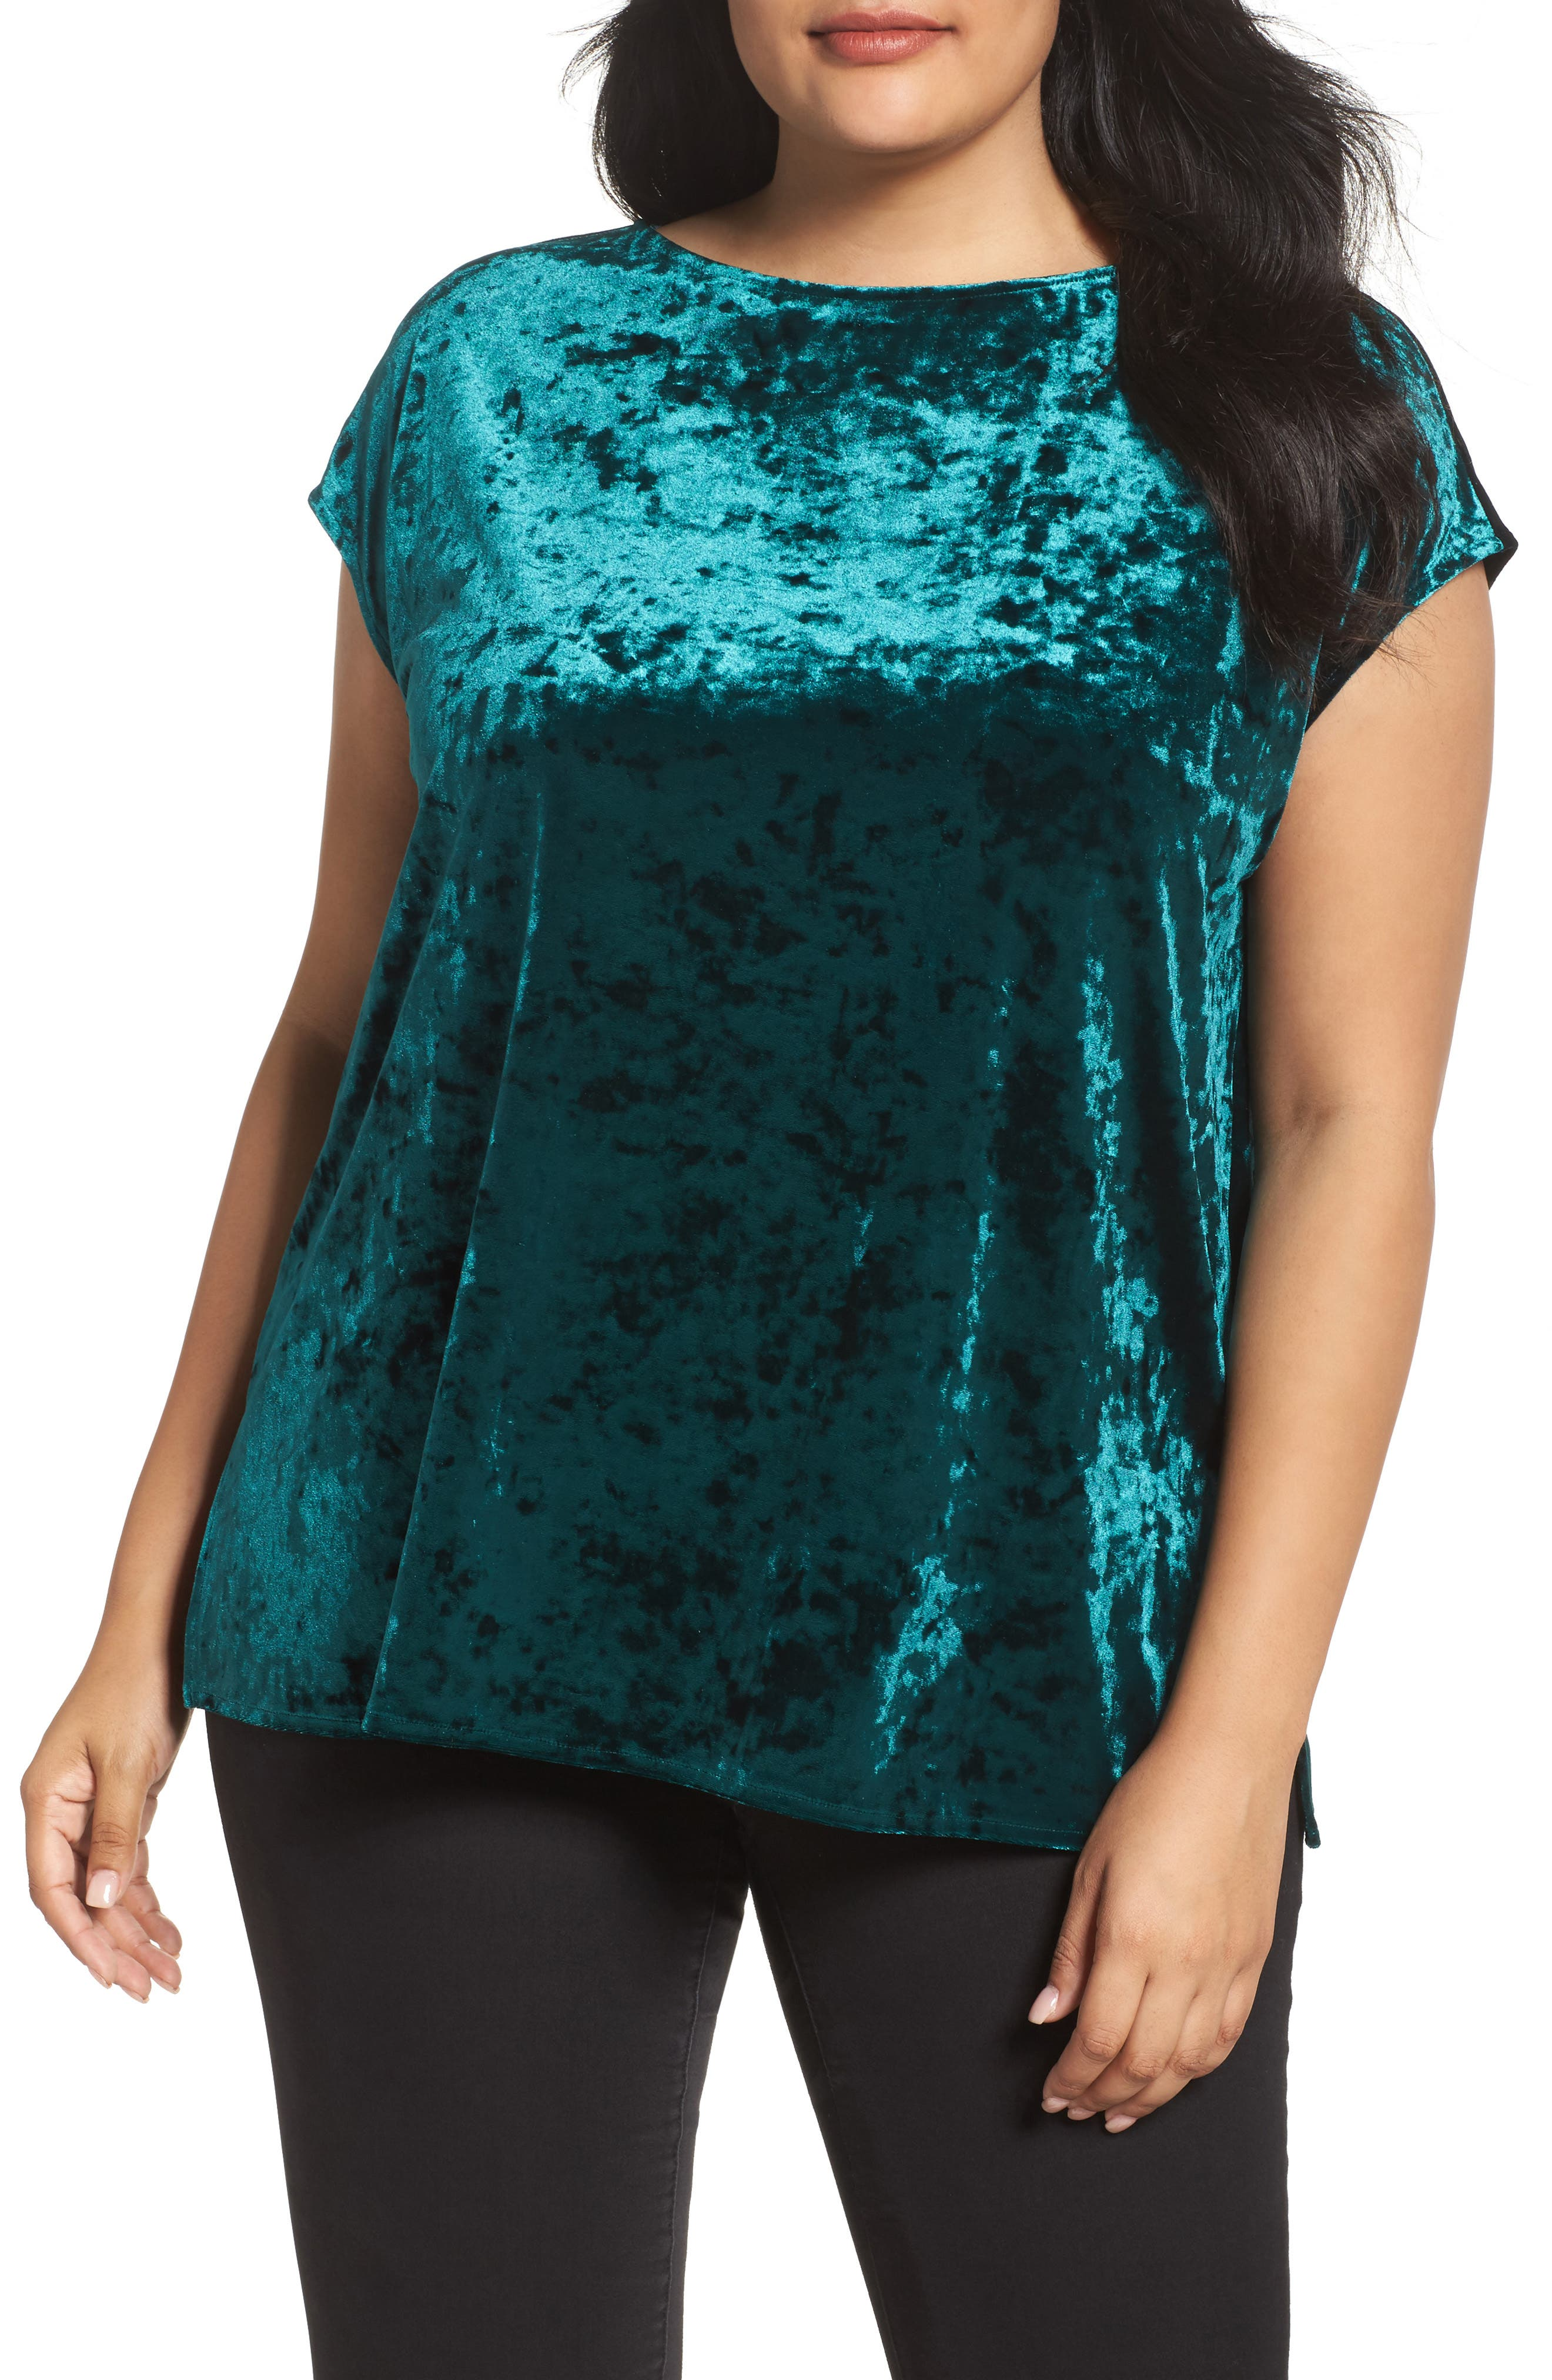 Vince Camuto Crushed Velvet Top (Plus Size)